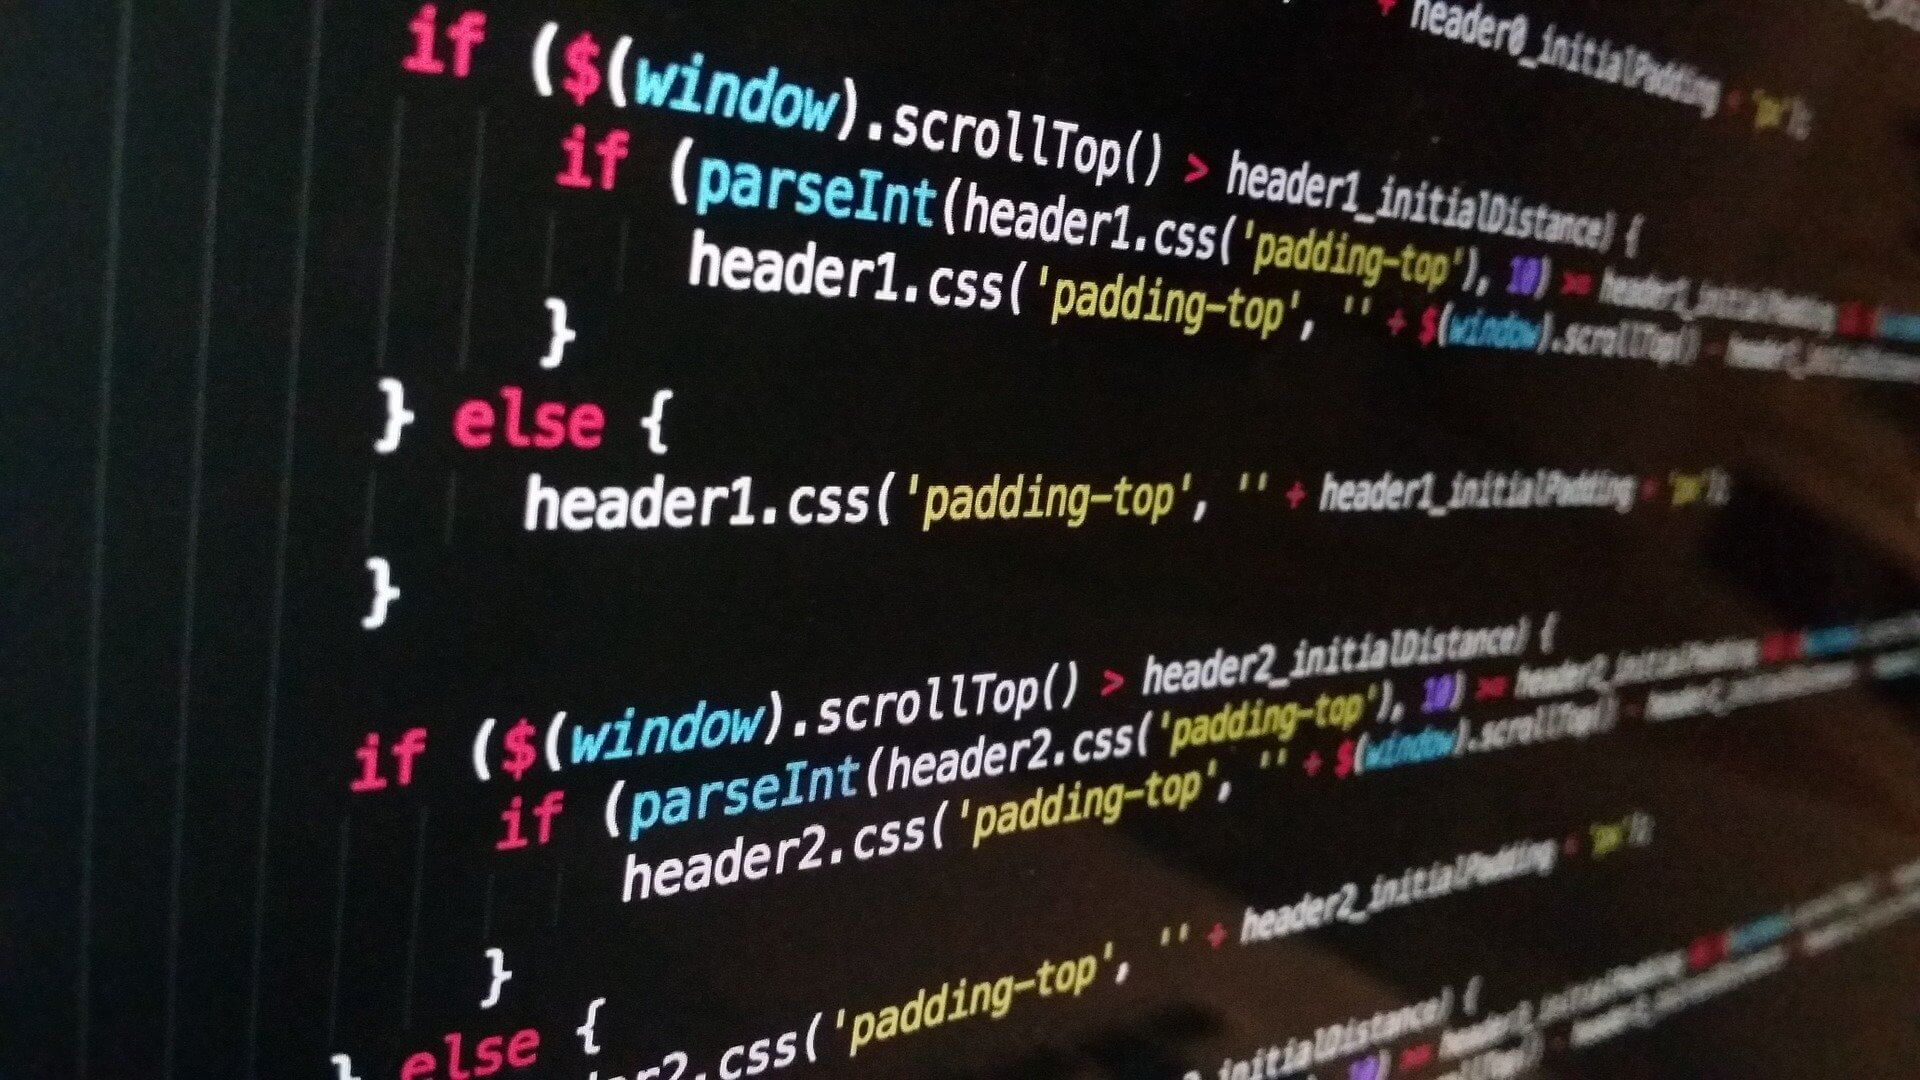 Dynamics Option Set - Get/Set the Dynamics 365 Option Set text and values.